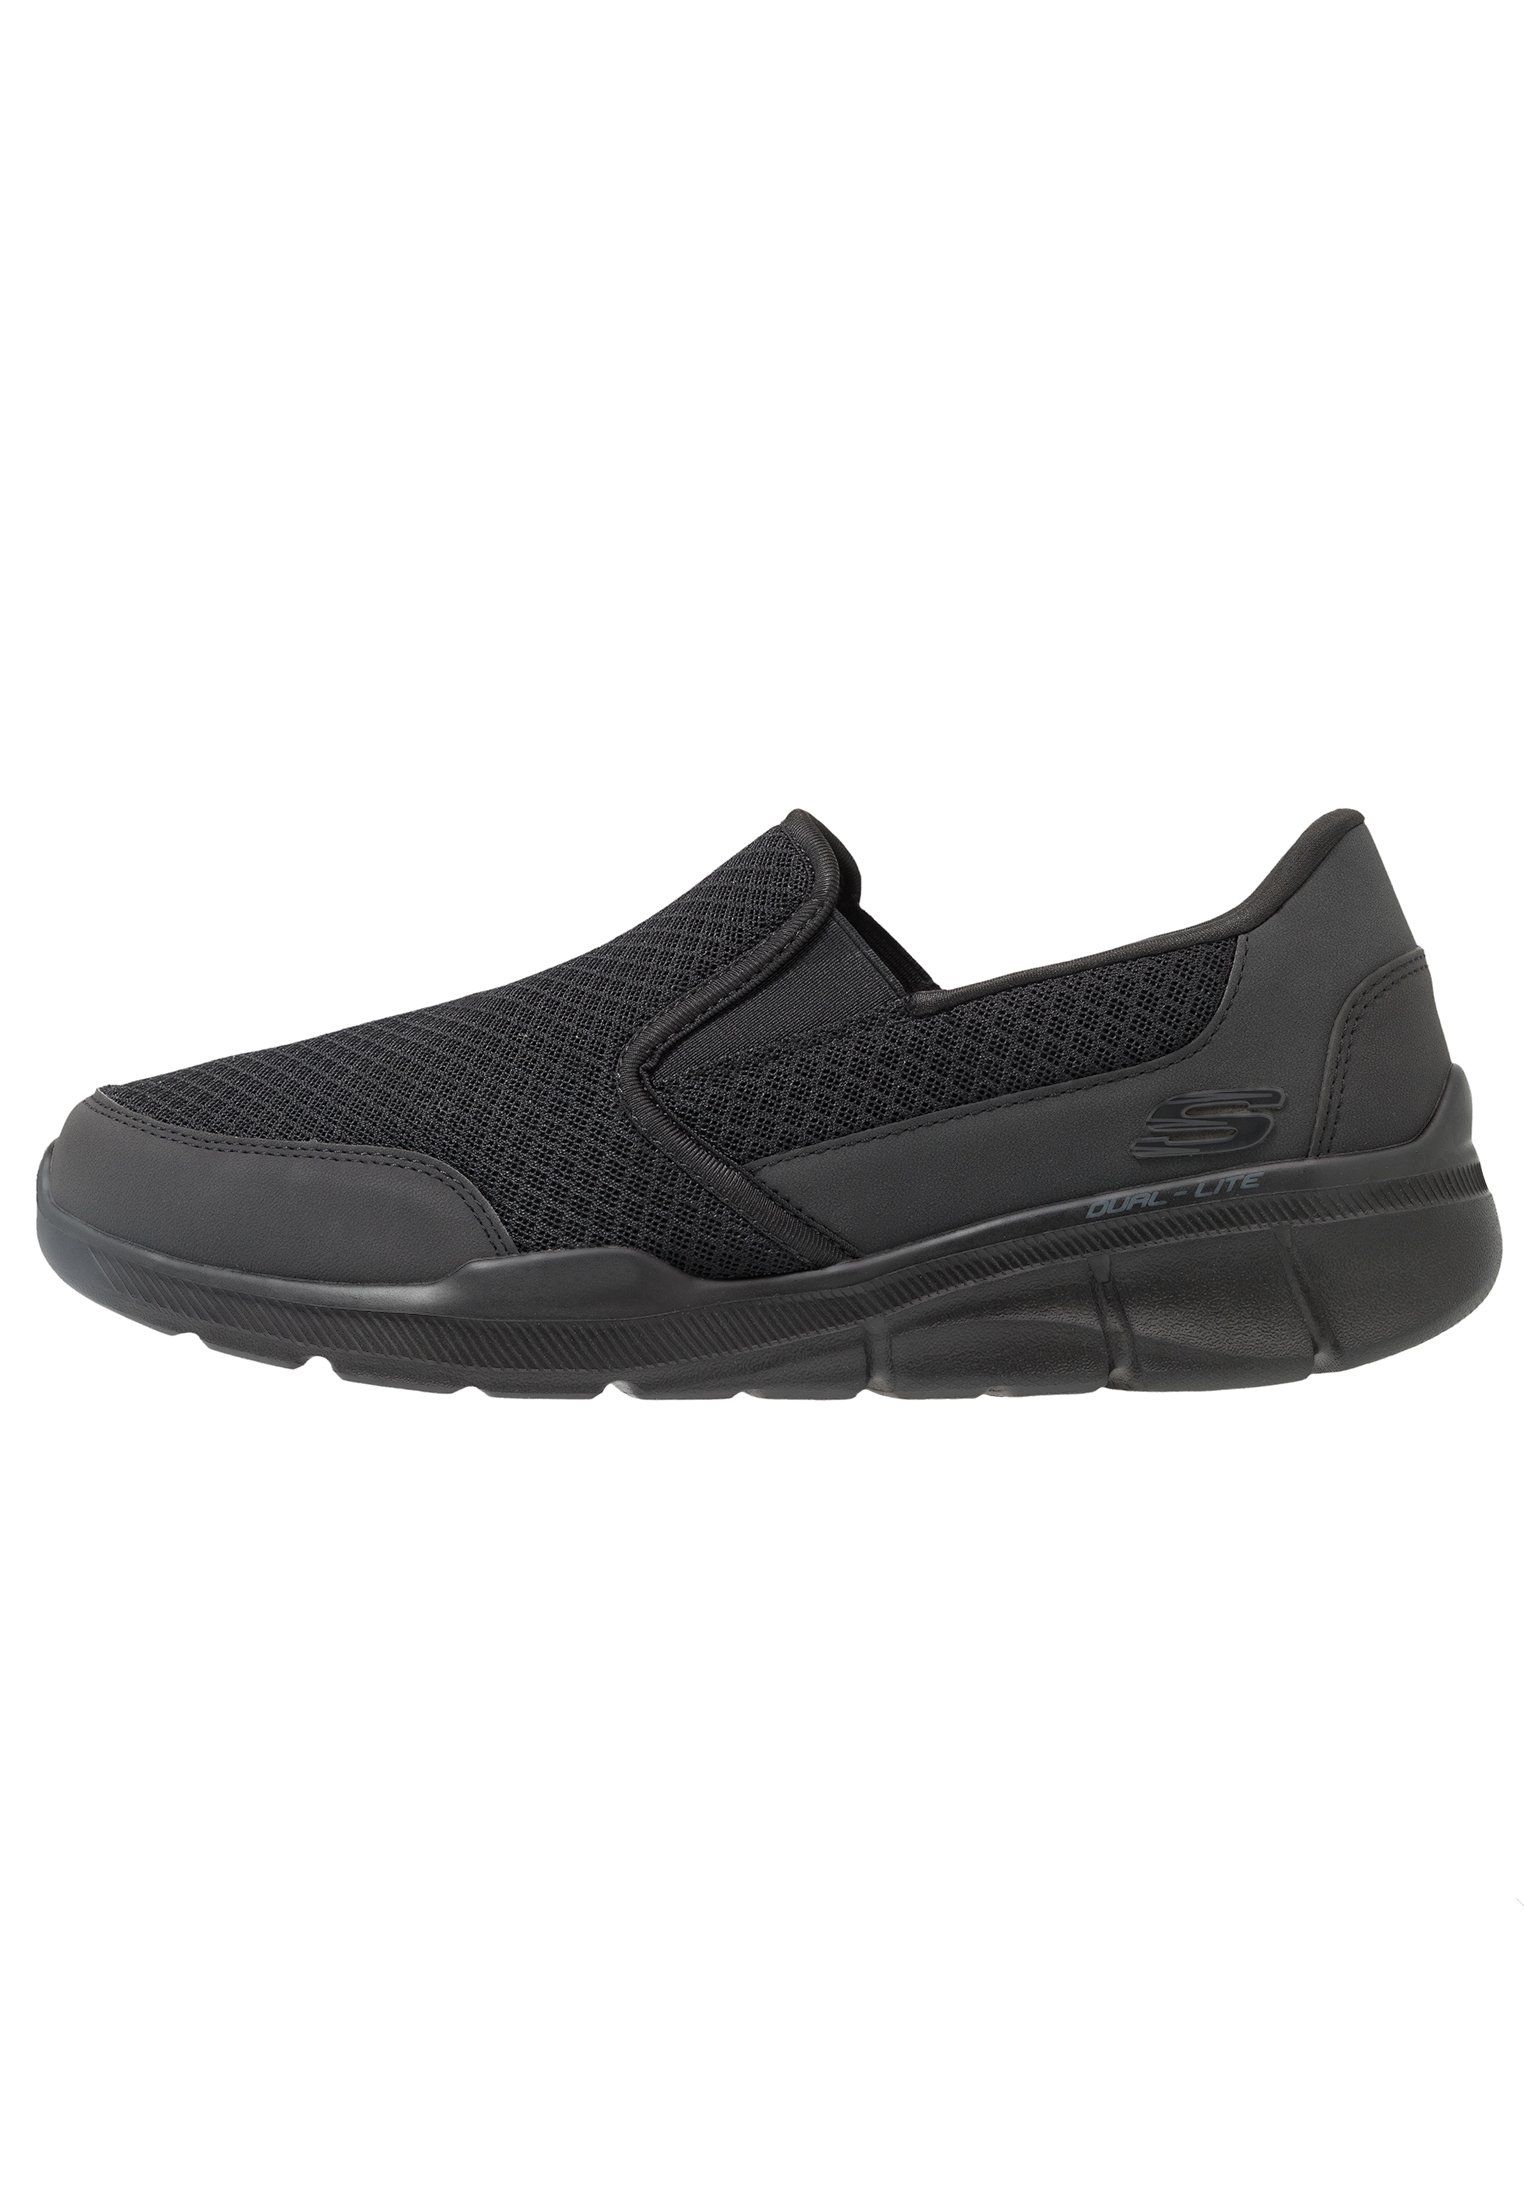 Skechers Sport EQUALIZER 3.0 RELAXED FIT Scarpe senza